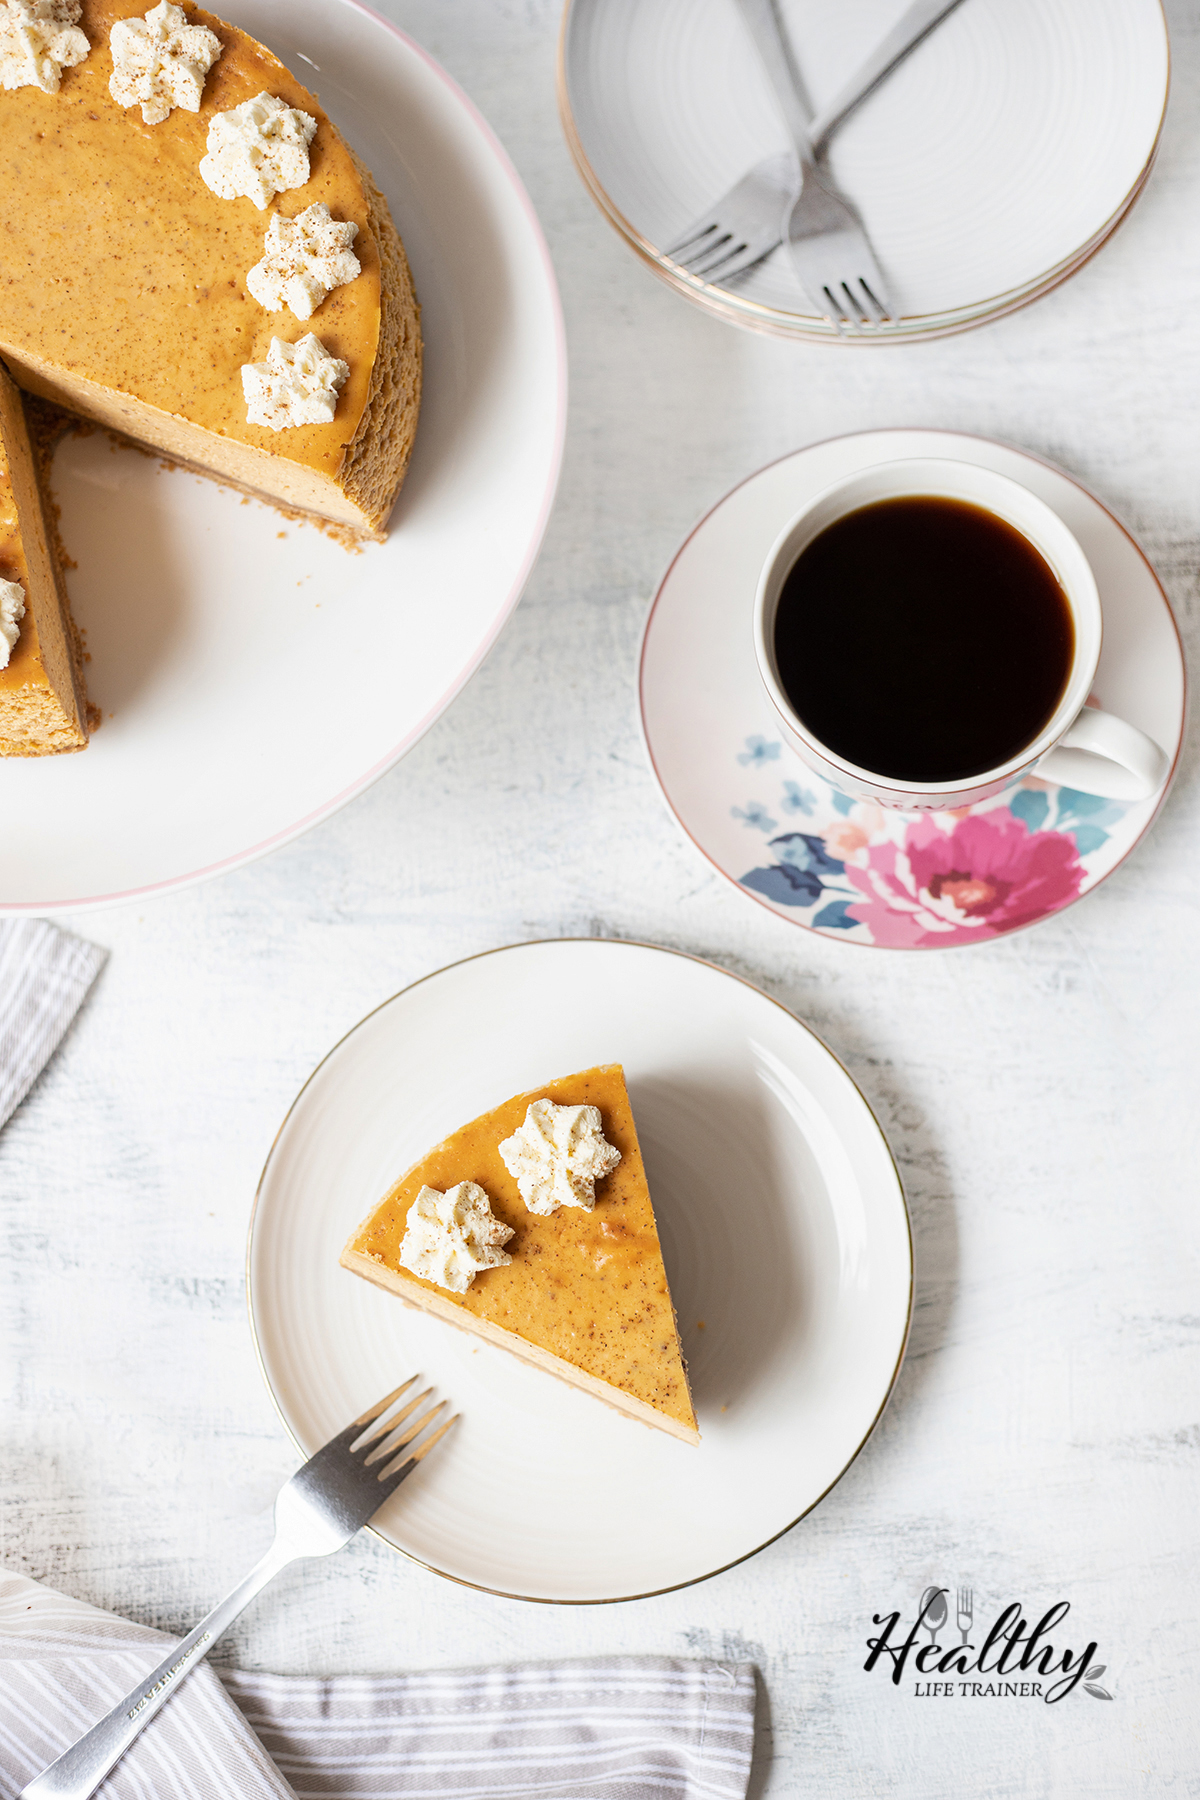 a cup of coffee and two plates of Pumpkin Cheesecake and a fork